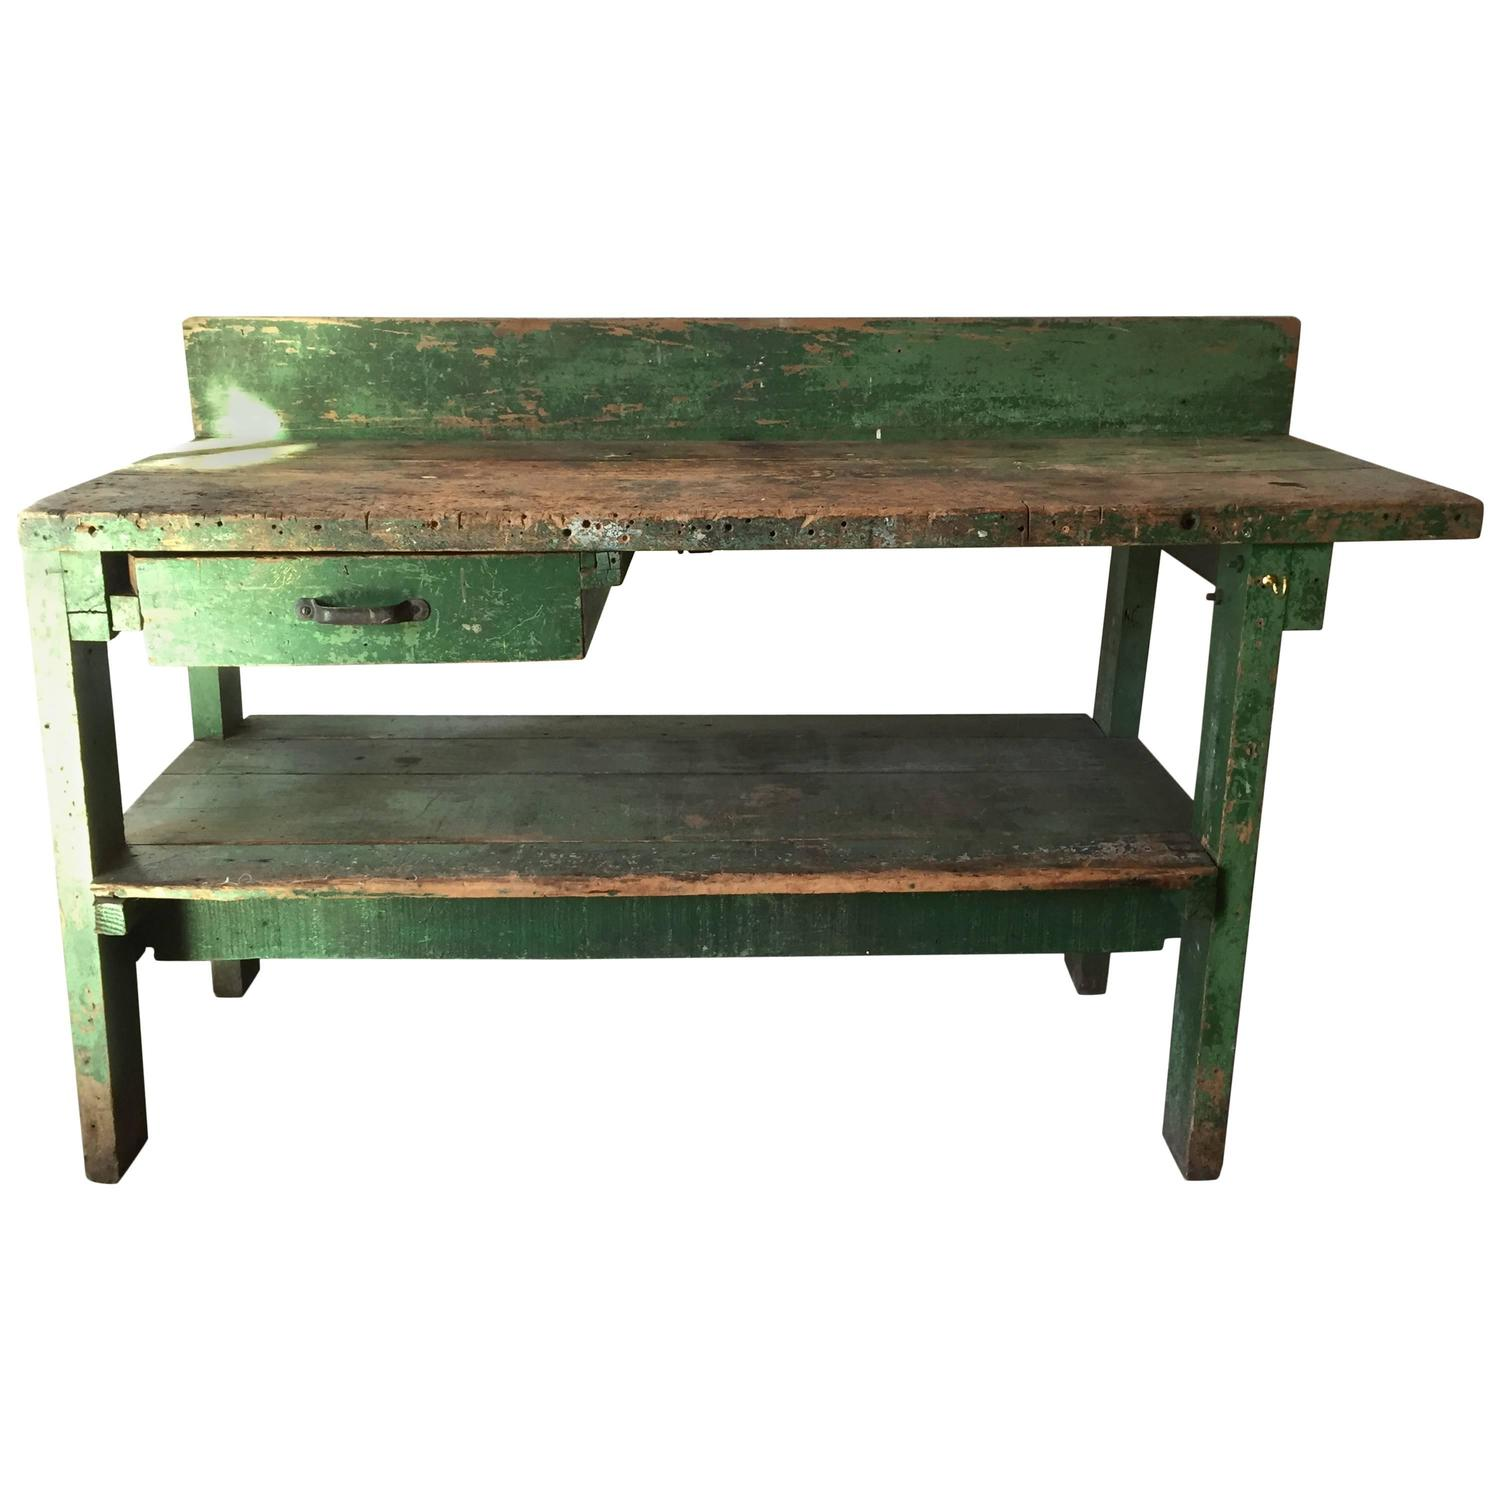 large work bench american 19th century for sale at 1stdibs. Black Bedroom Furniture Sets. Home Design Ideas